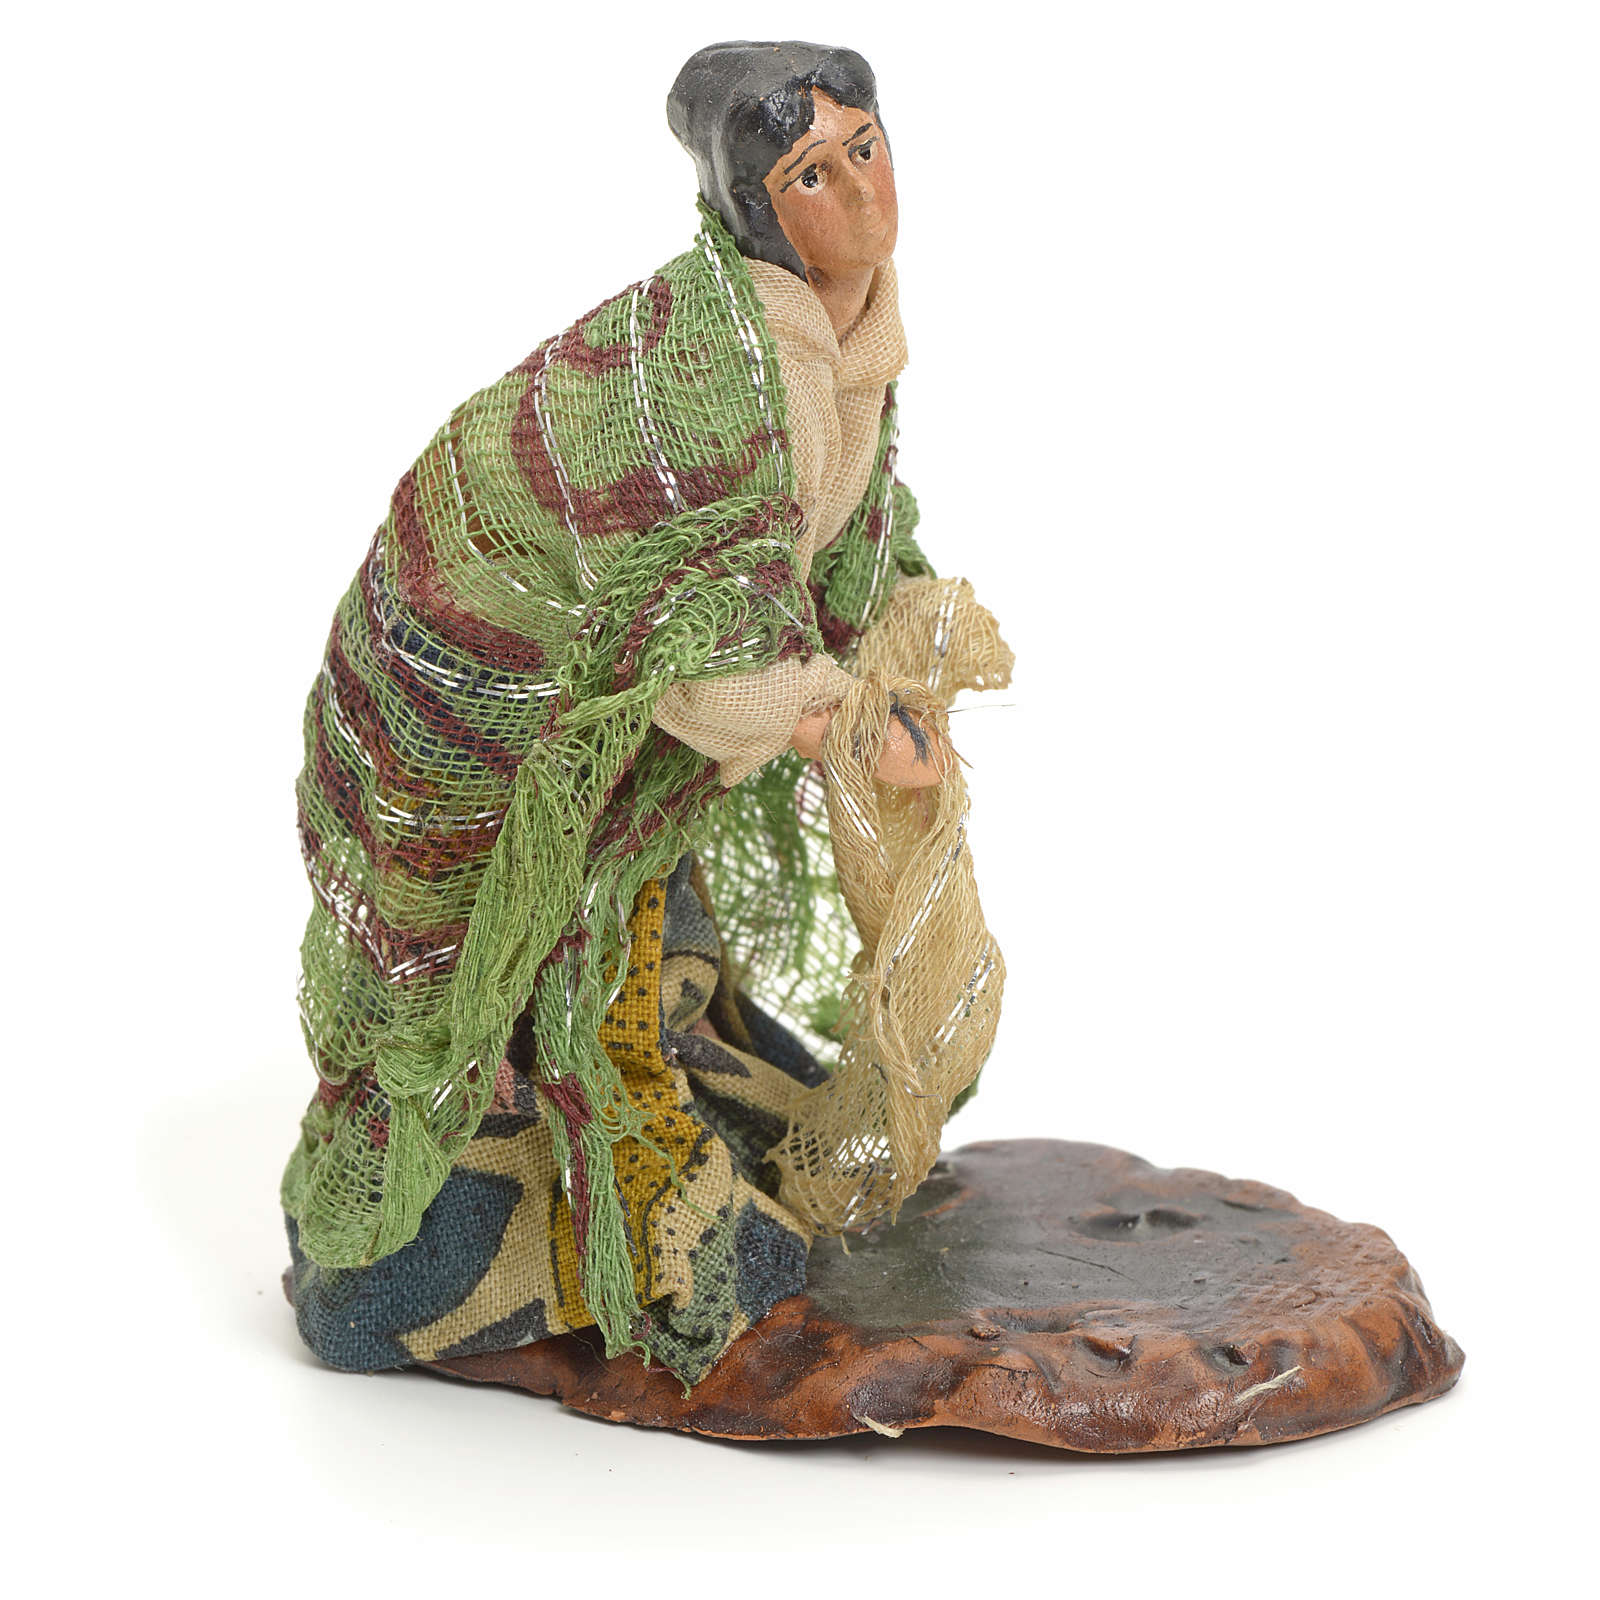 Neapolitan nativity figurine, woman with hanged clothes, 8cm 4